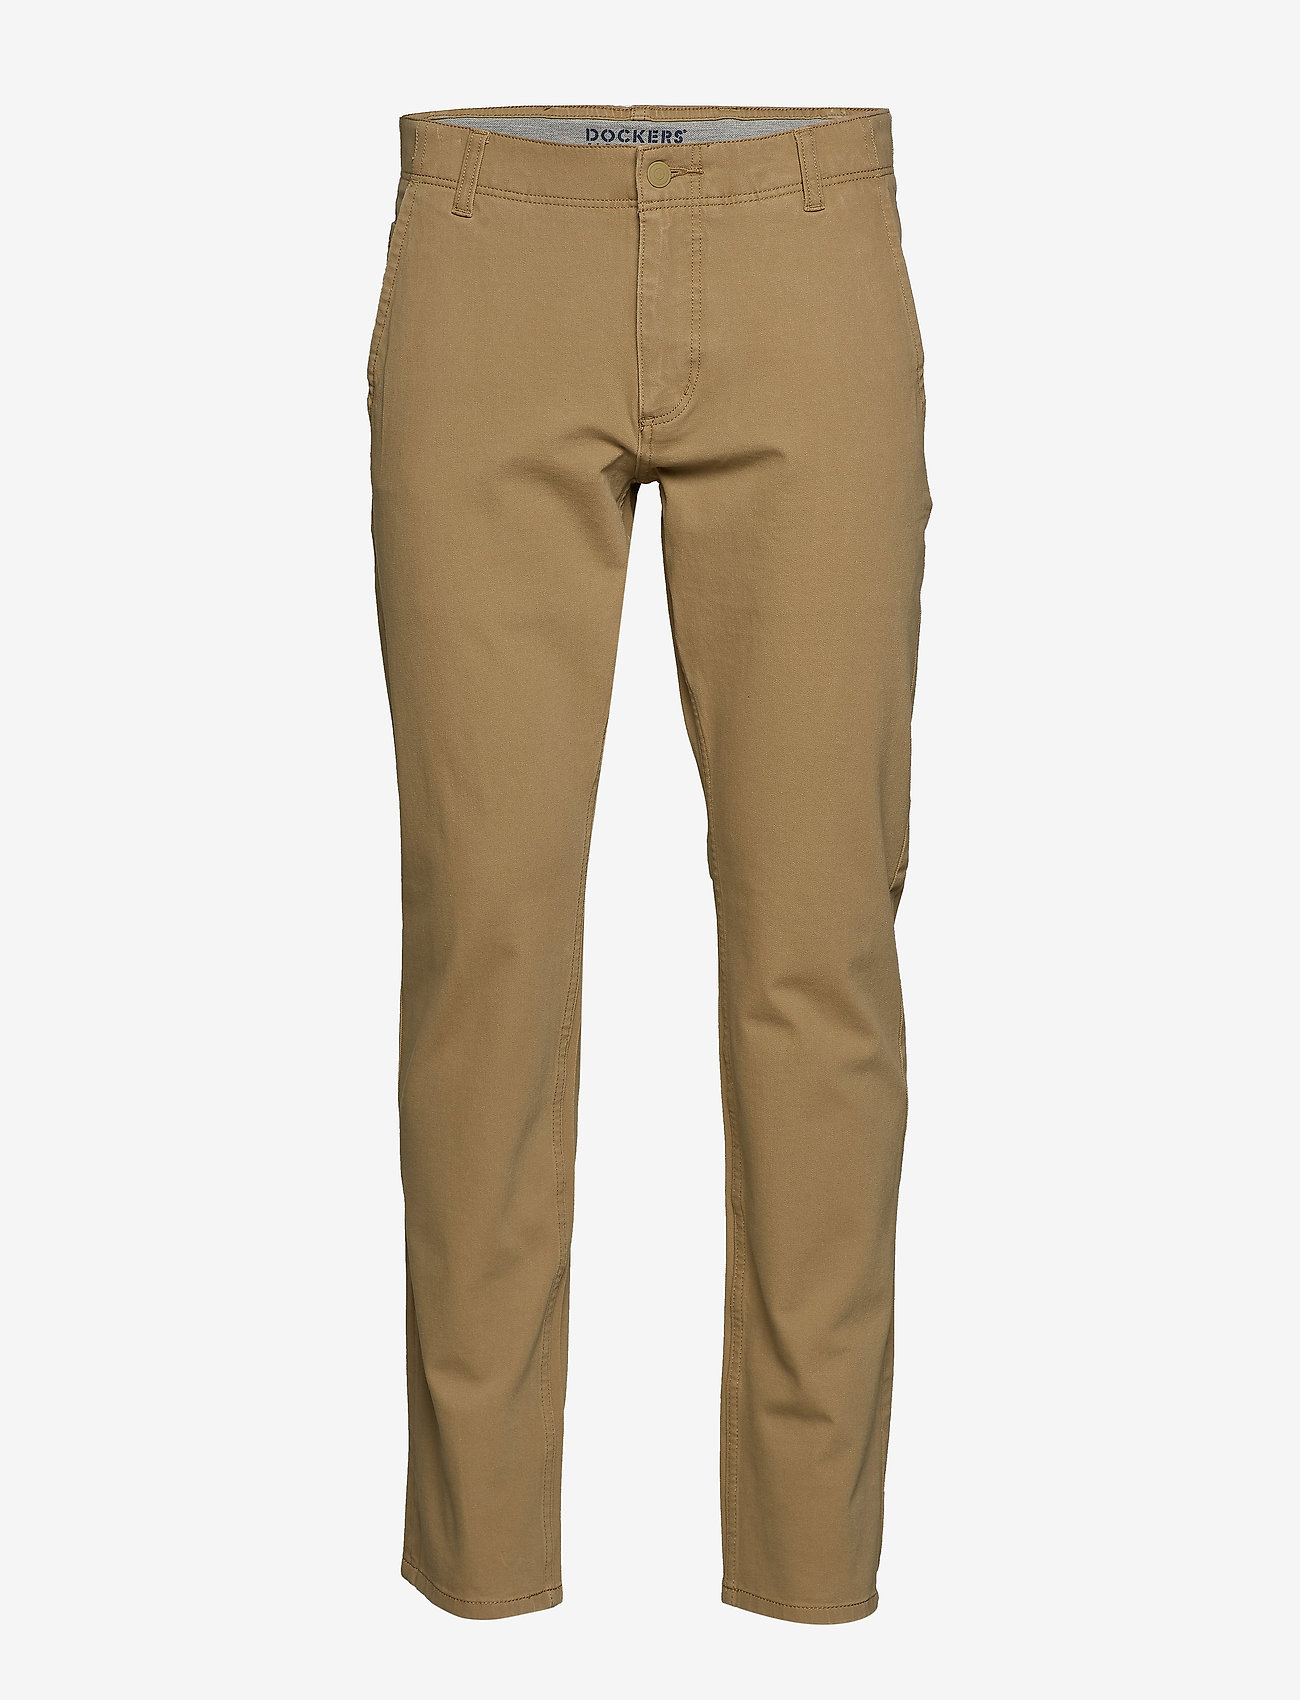 Dockers - ALPHA KHAKI 360 NEW BRITISH KH - chinos - neutrals - 0